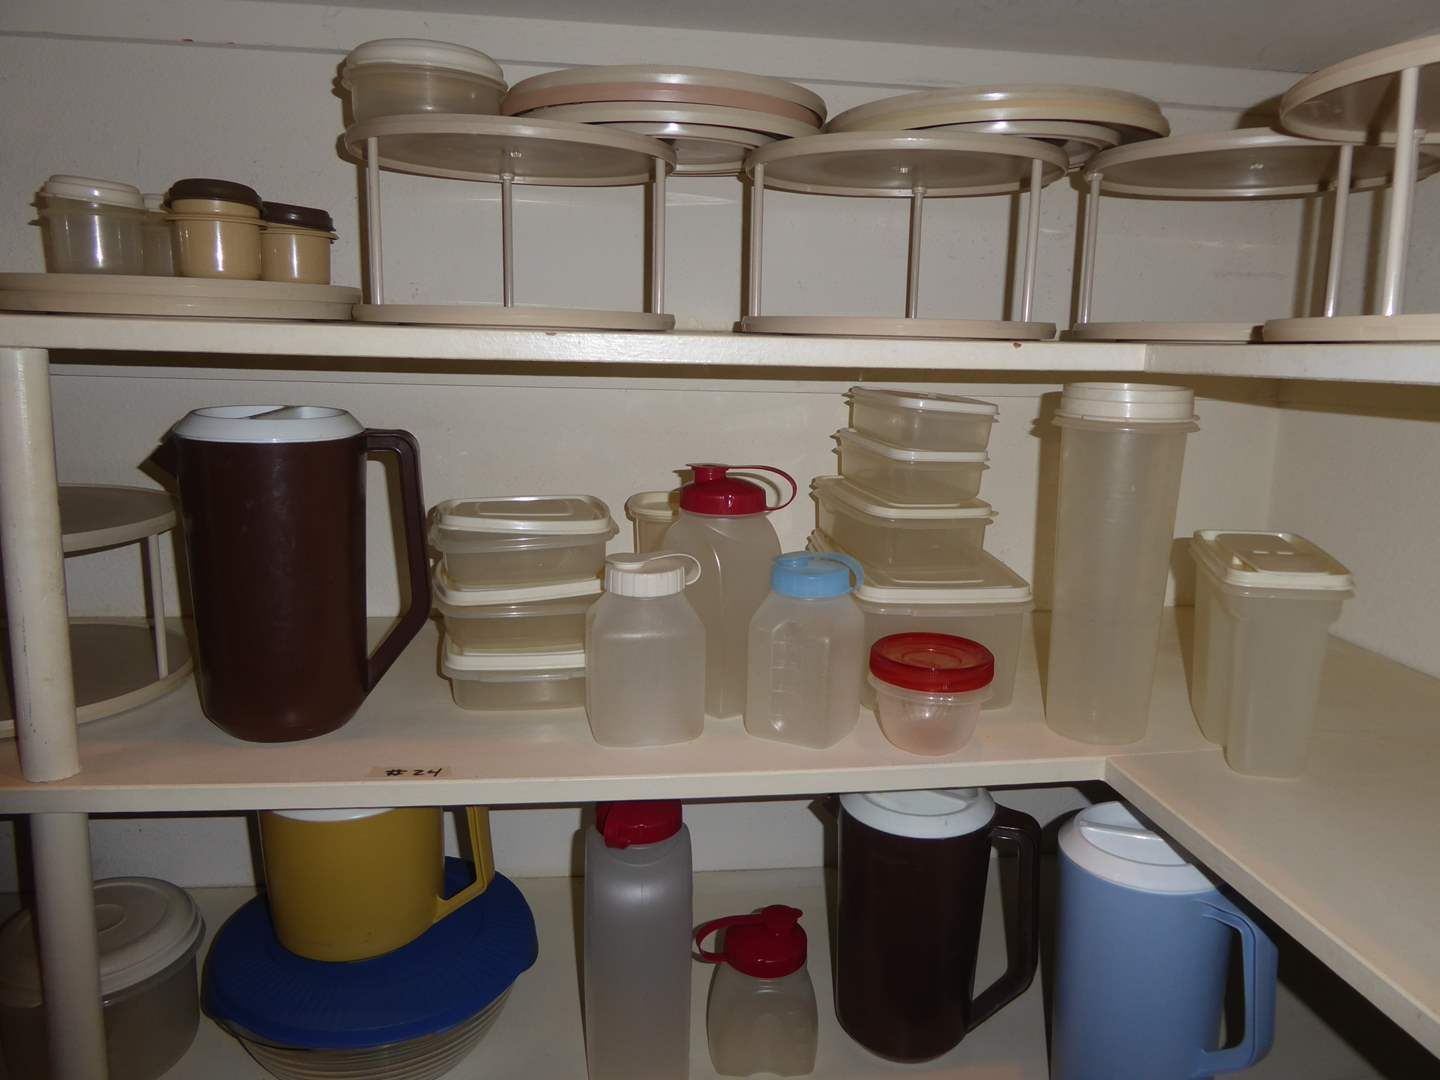 Lot # 24 - Rubbermade Storage Containers & Spice Racks (main image)